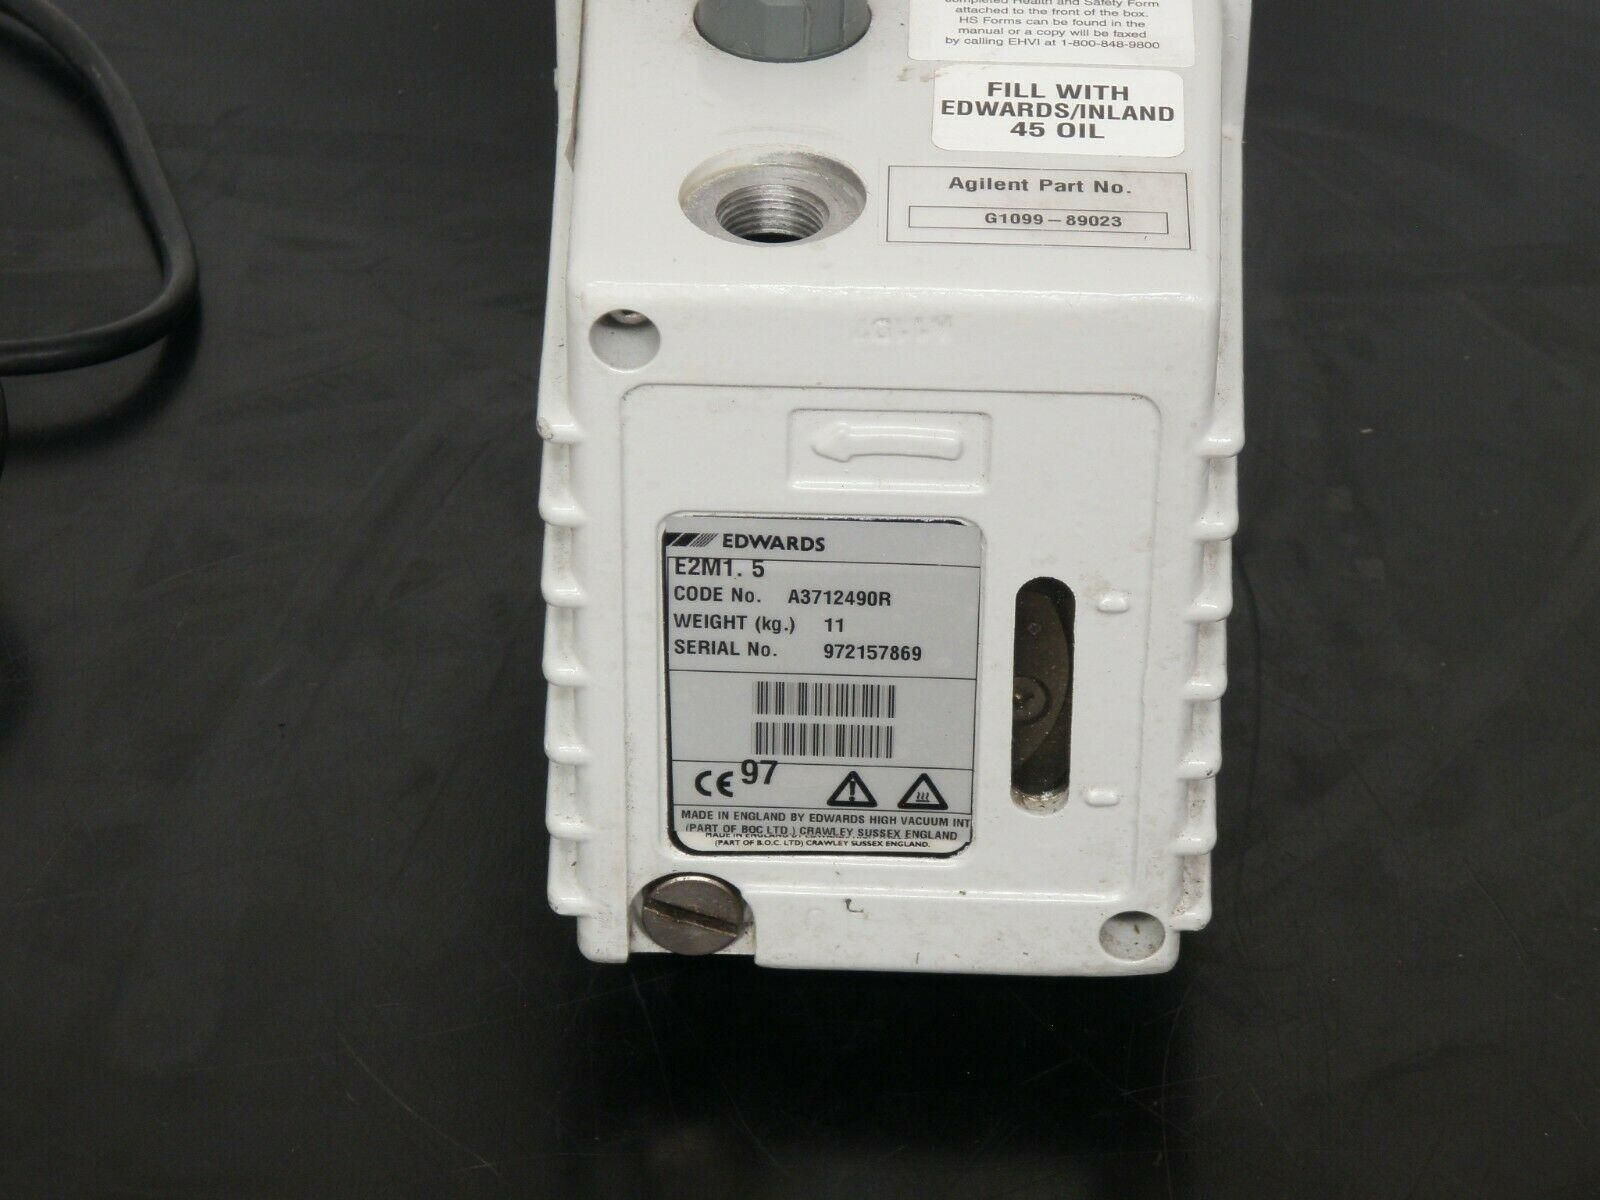 Edwards   E2M-1.5 Vacuum Pump, Tested